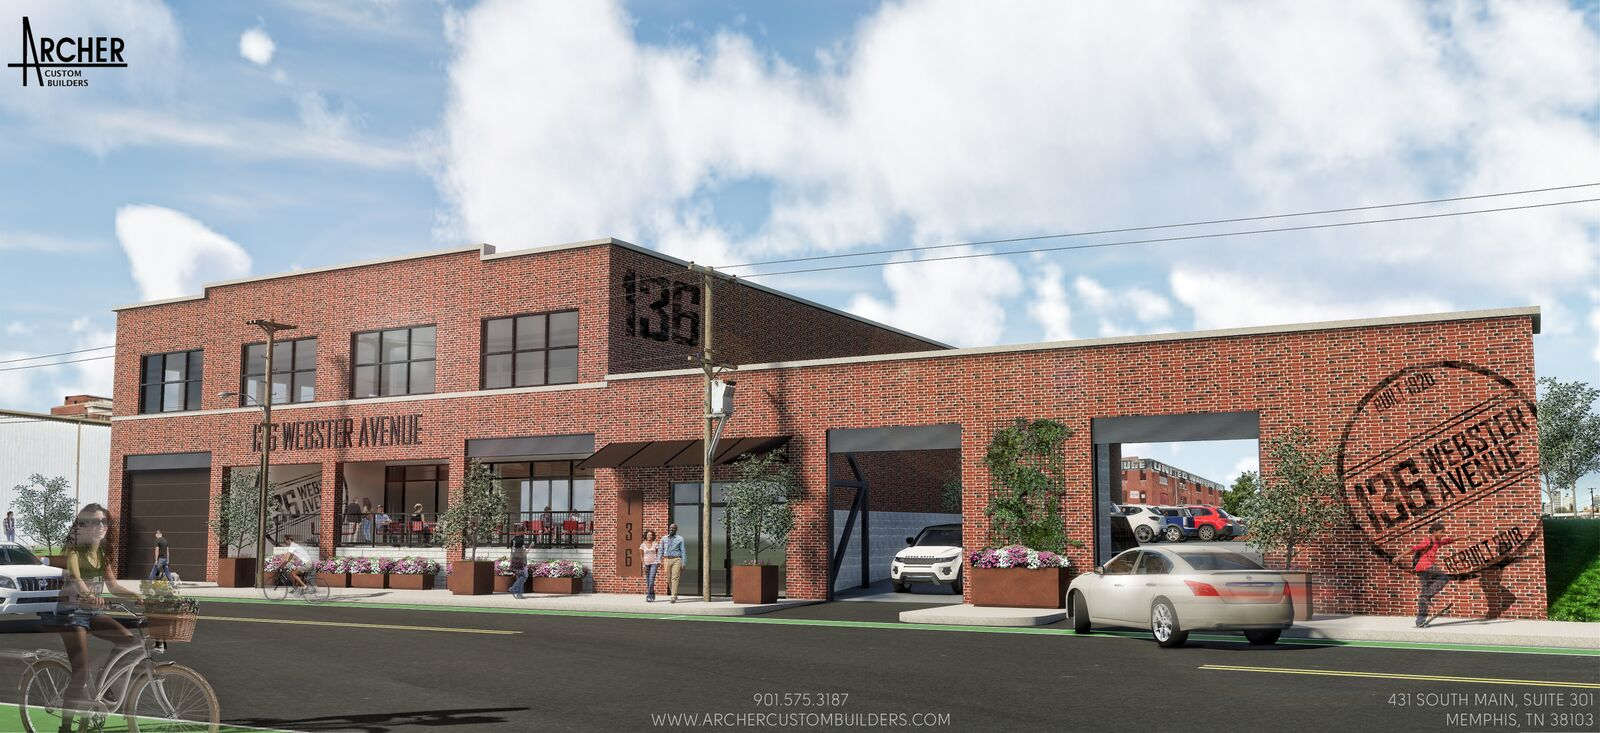 136 Webster Avenue Rendering